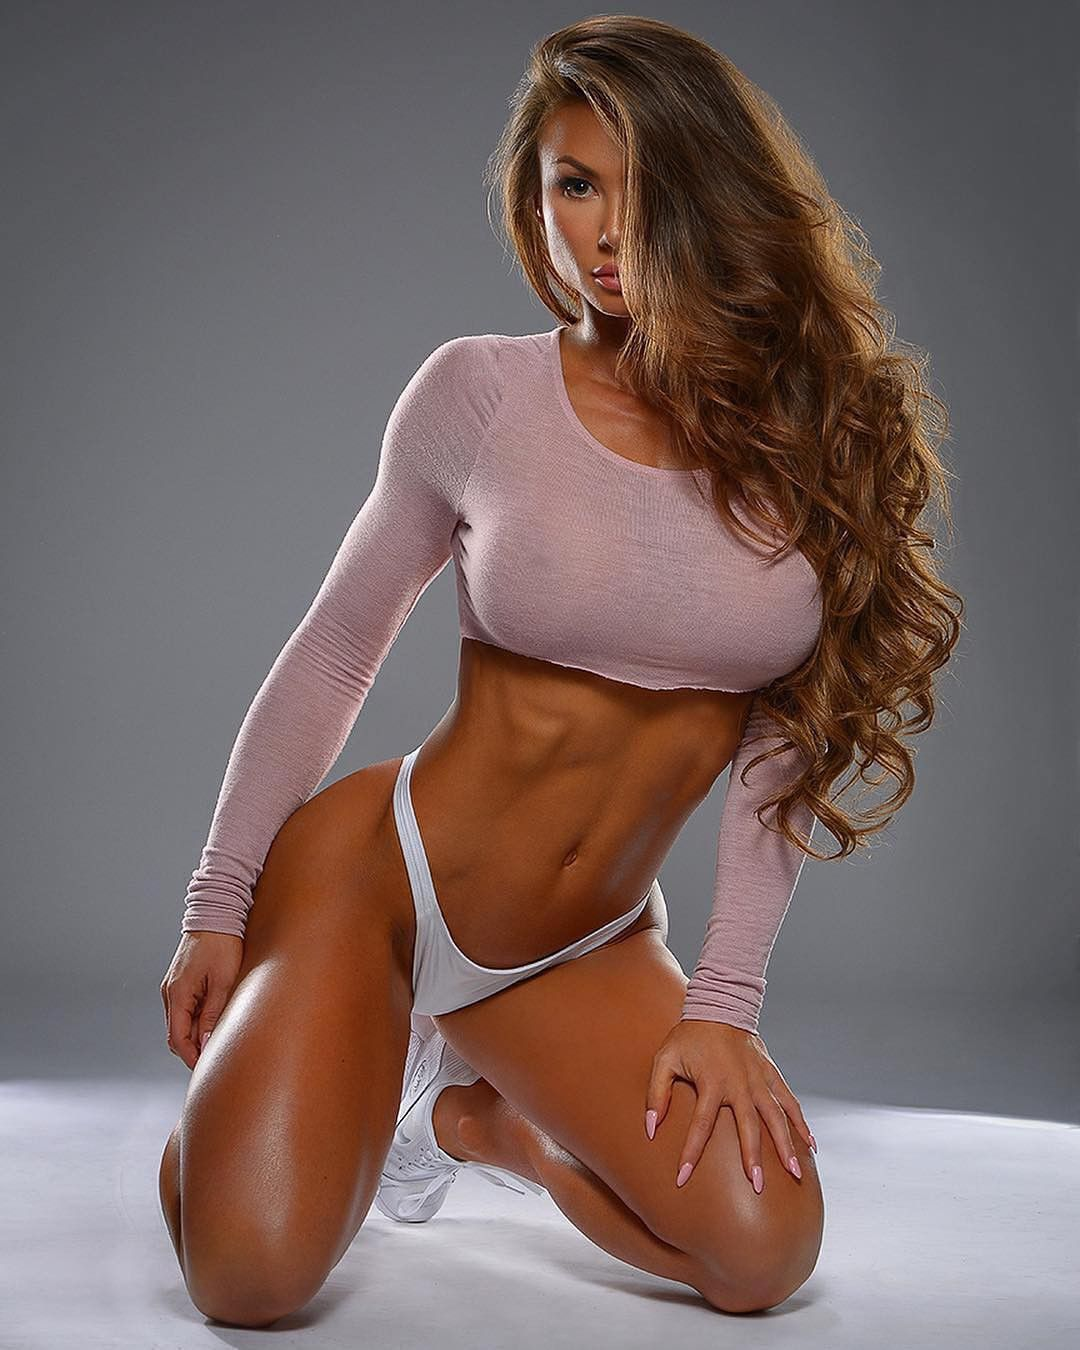 Fitness babes large pictures — img 9